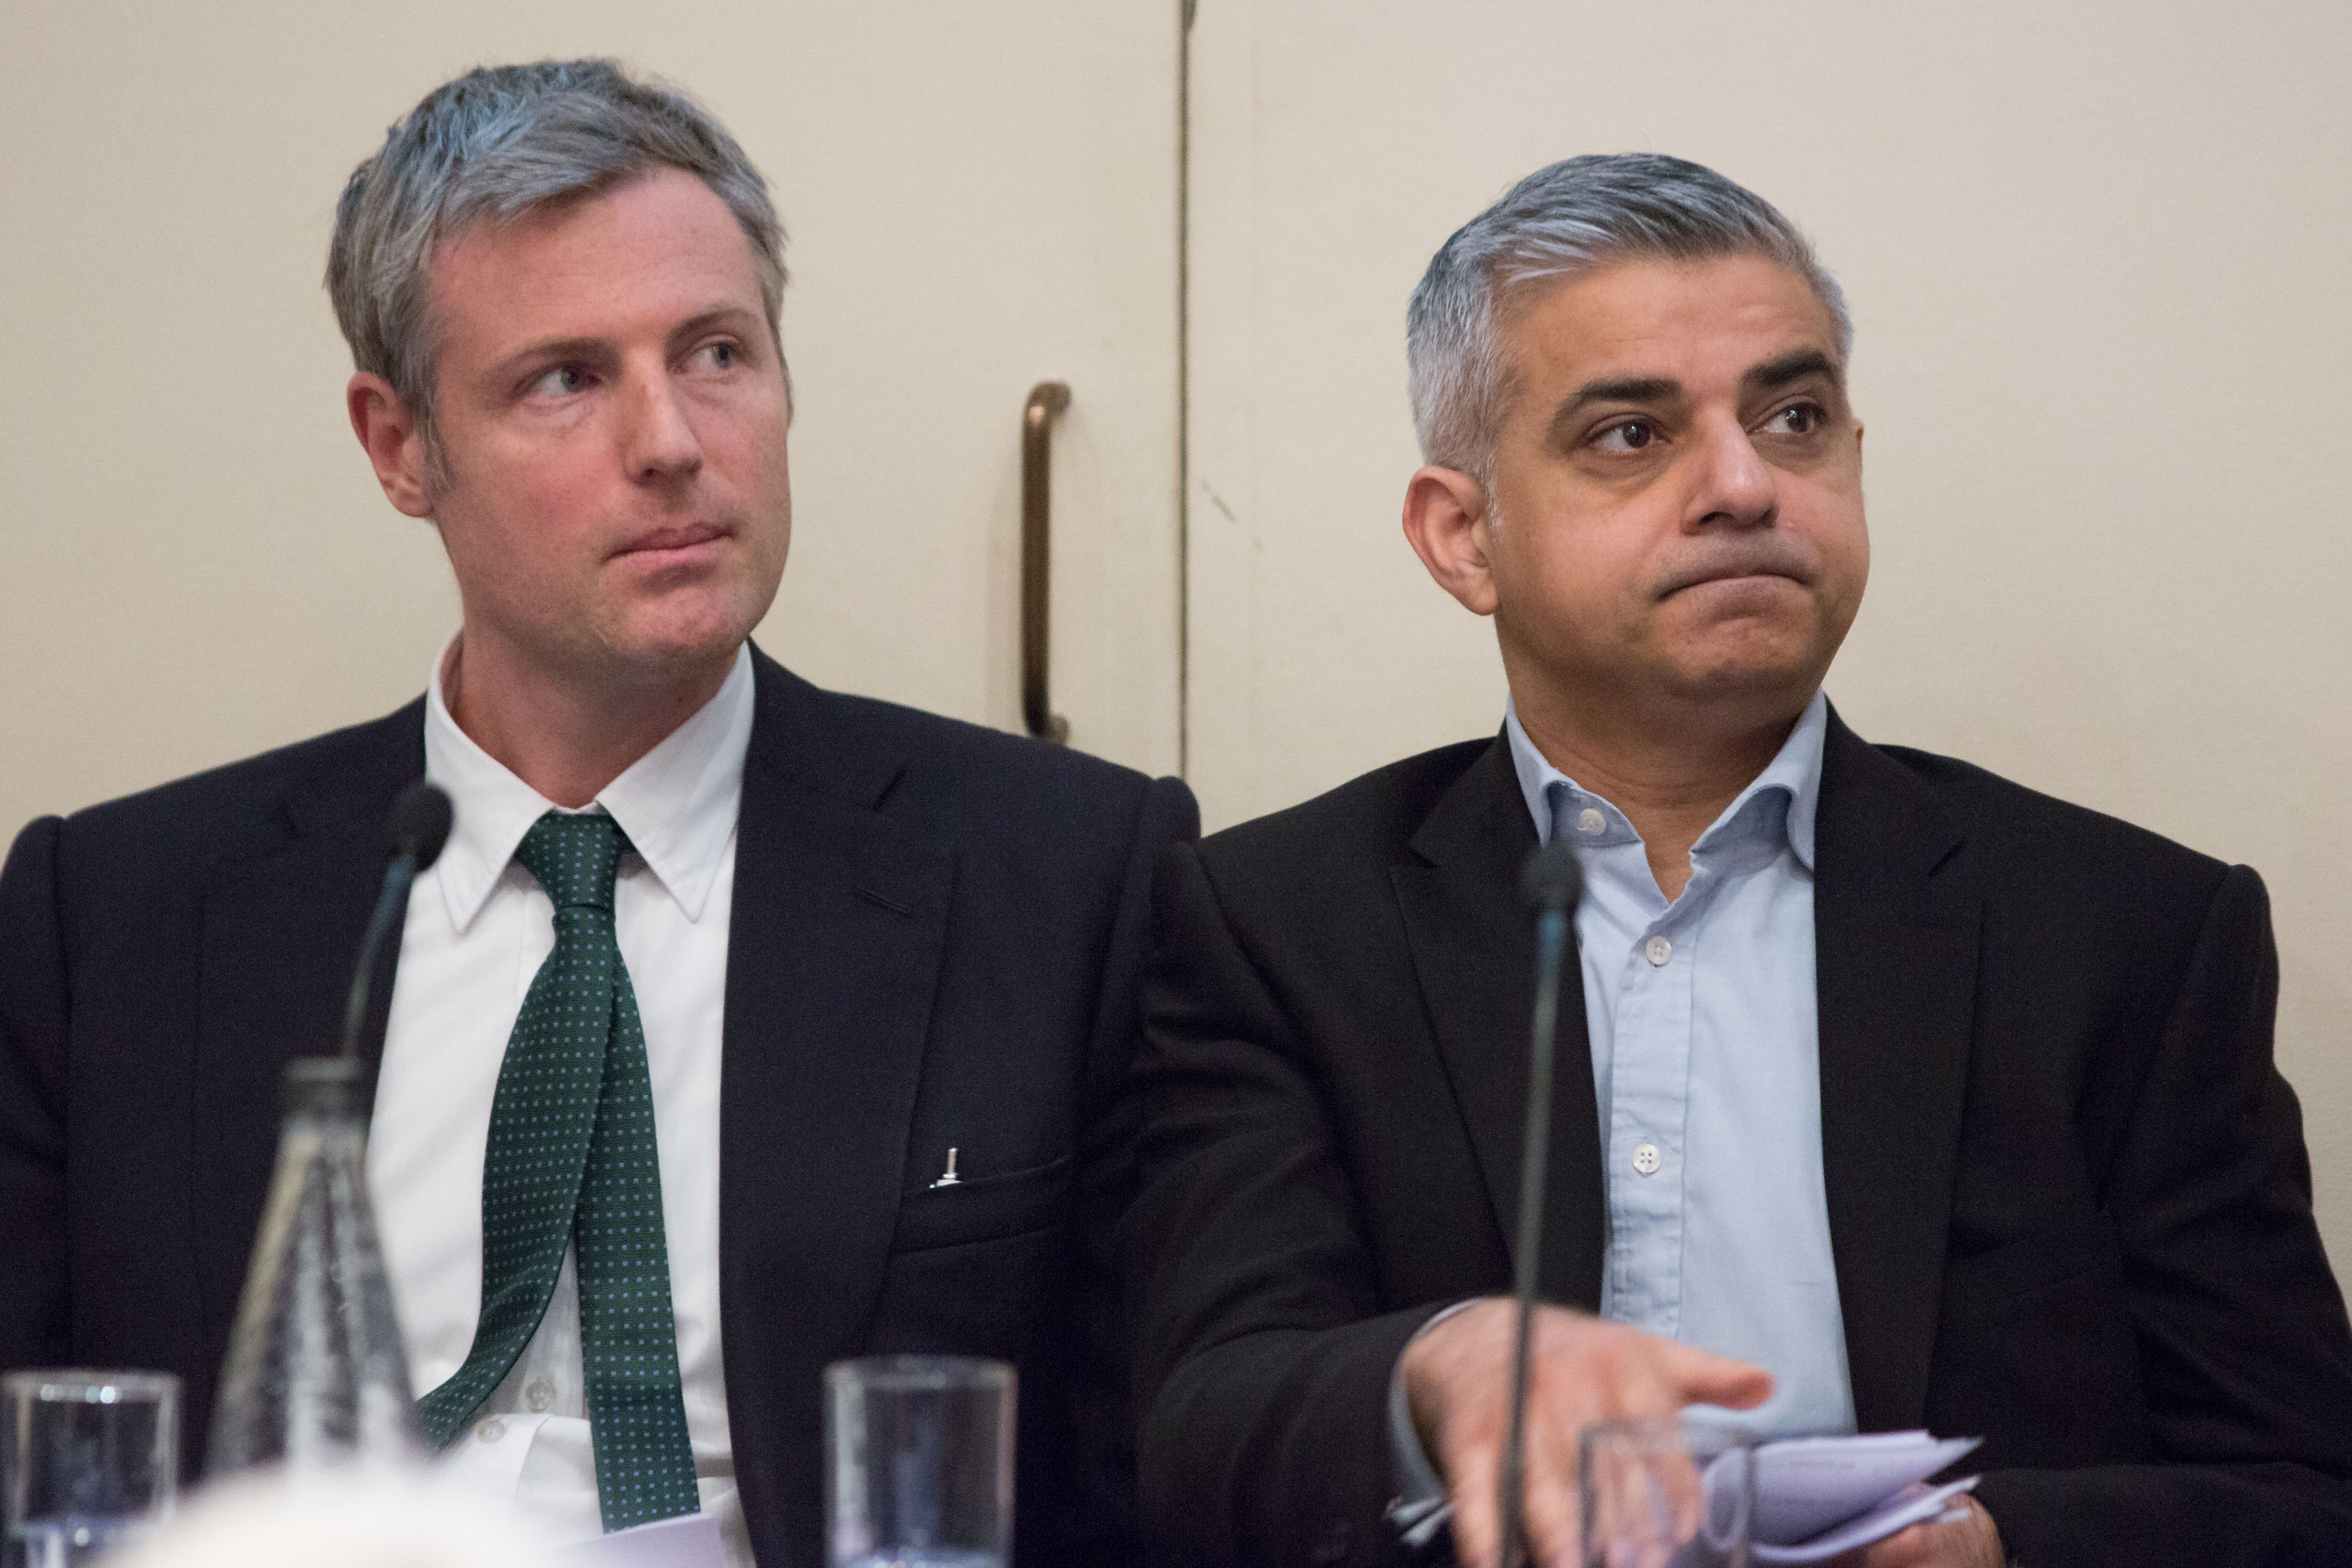 Zac Goldsmith, U.K. ruling Conservative Party candidate for the role of London Mayor, left and Sadiq Kahn, U.K. opposition Labour Party candidate for the role of London Mayor, attend the launch of the London Housing Commission Report at the Geological Society in London, U.K., on Monday, March 7, 2016.